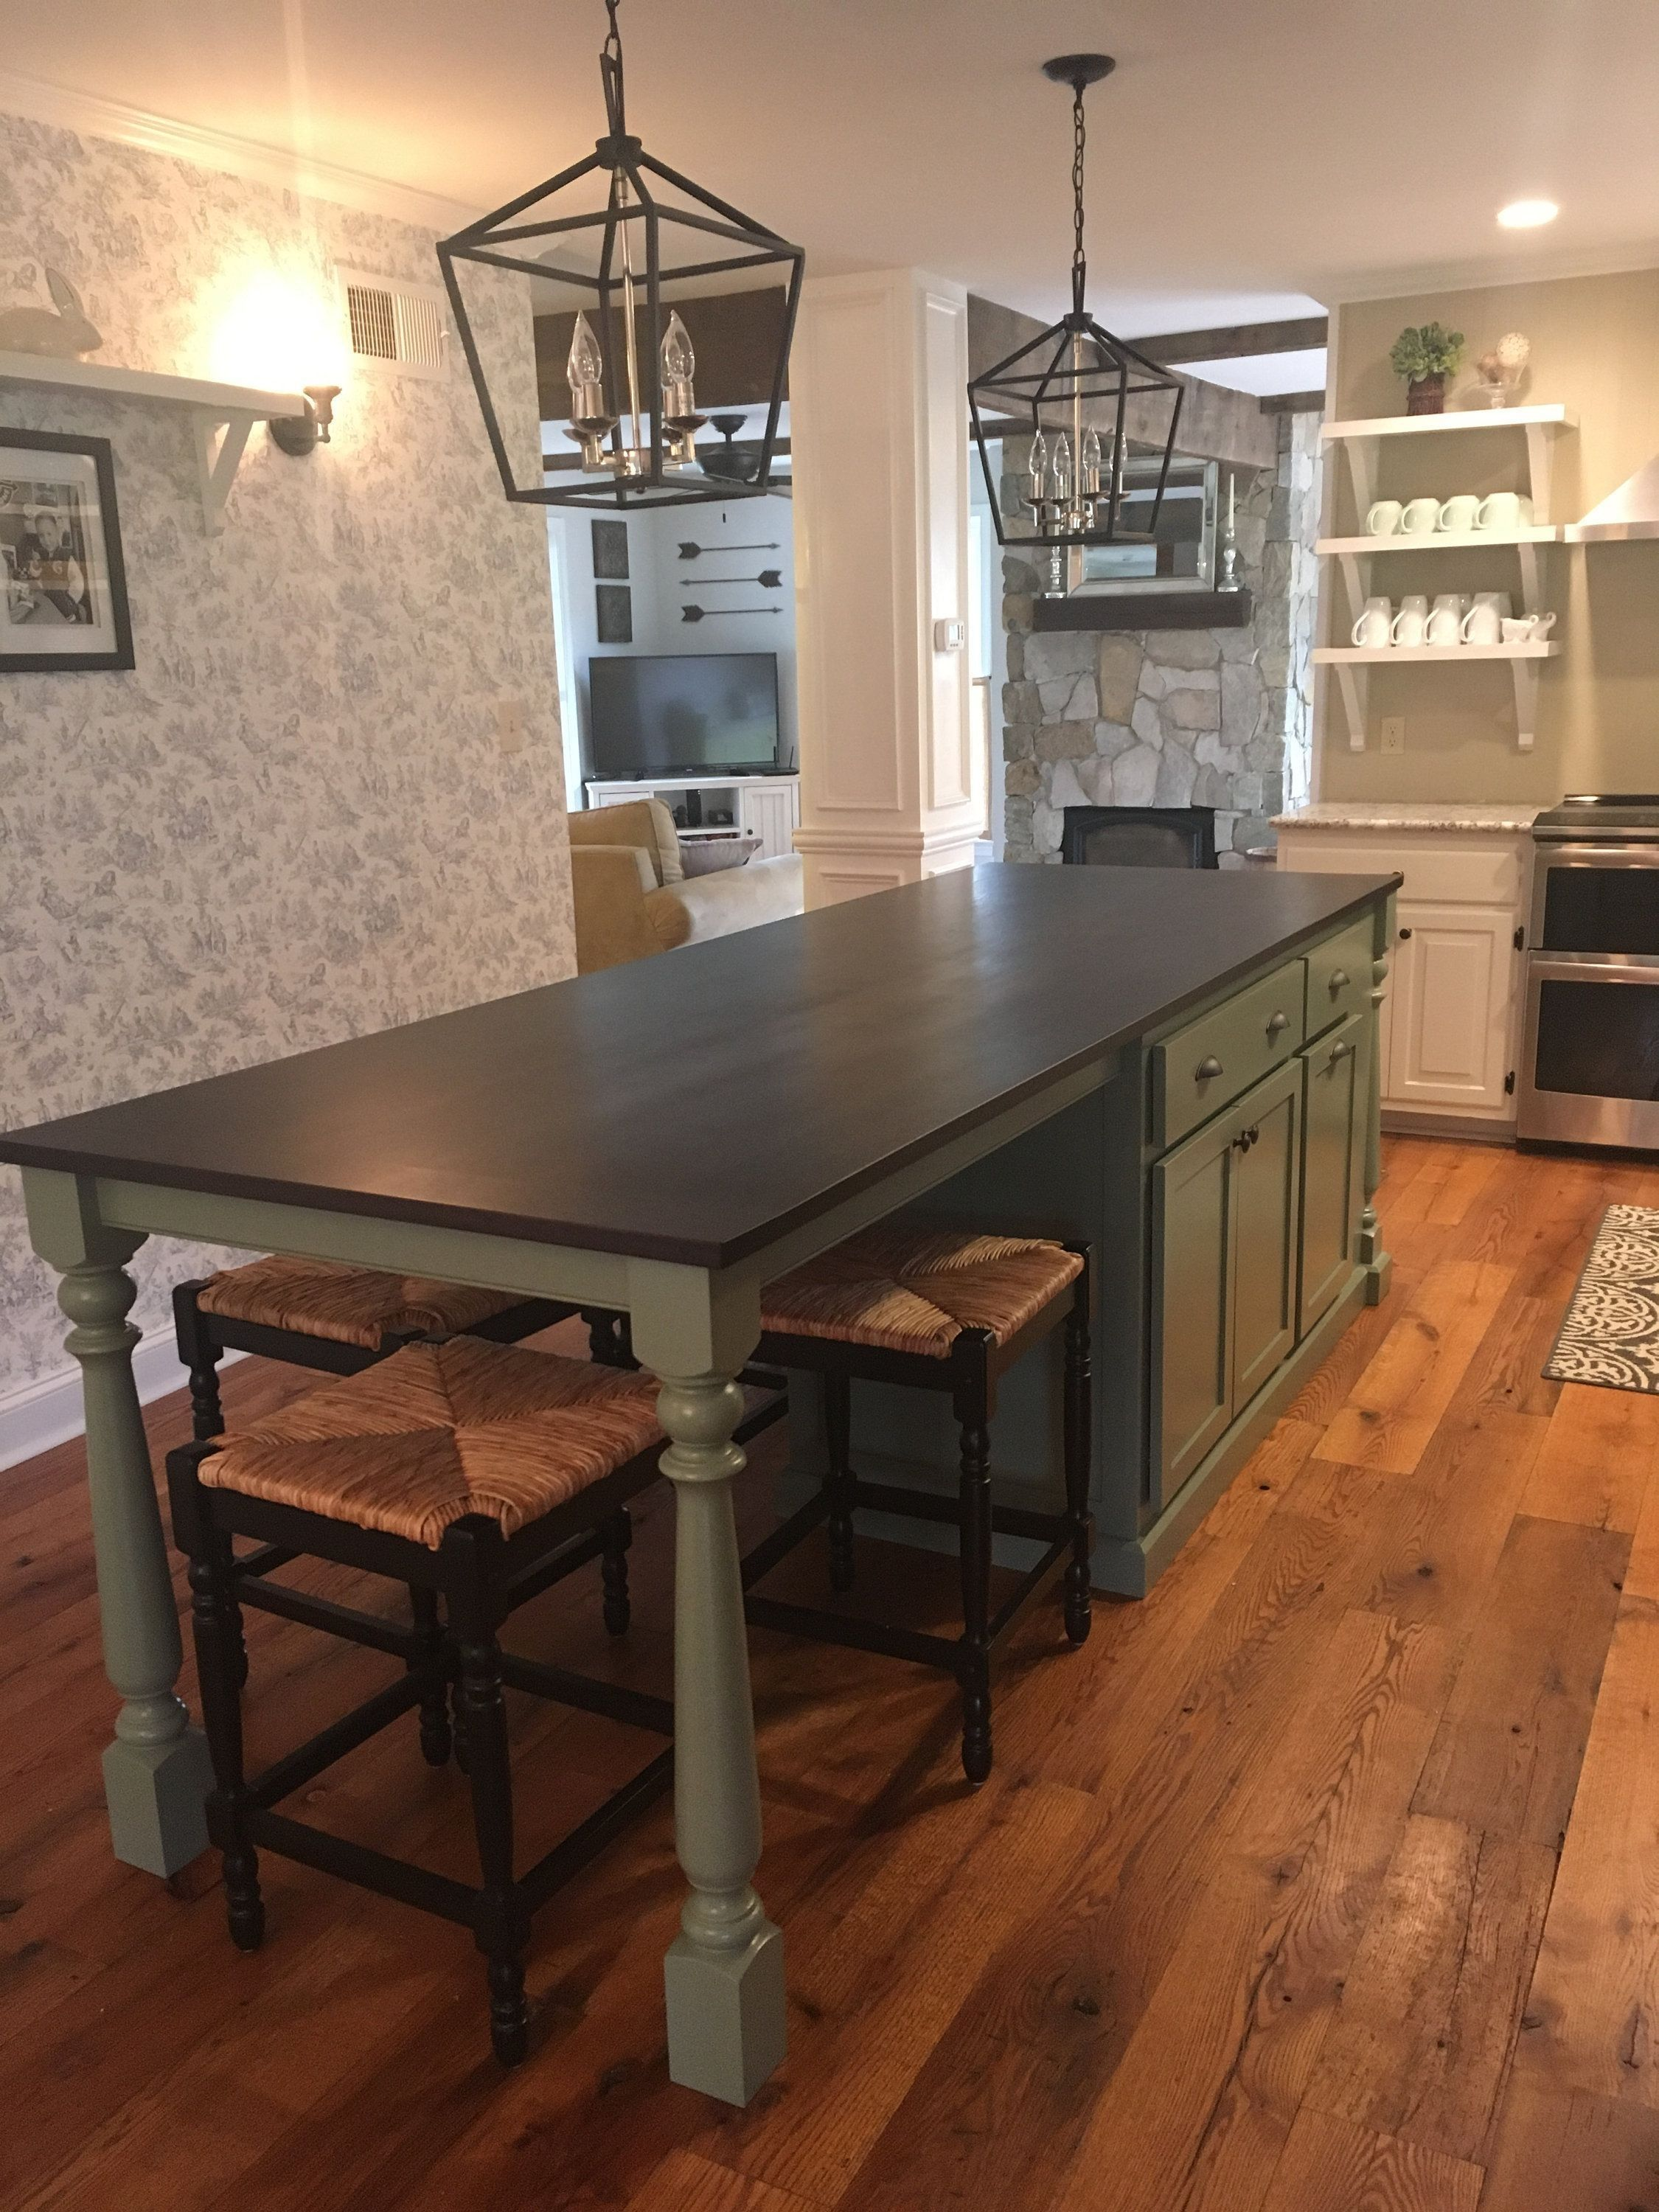 20 Creative Kitchen Island Design Ideas For Your Home In 2020 Kitchen Remodel Small Kitchen Design Small Kitchen Island With Seating